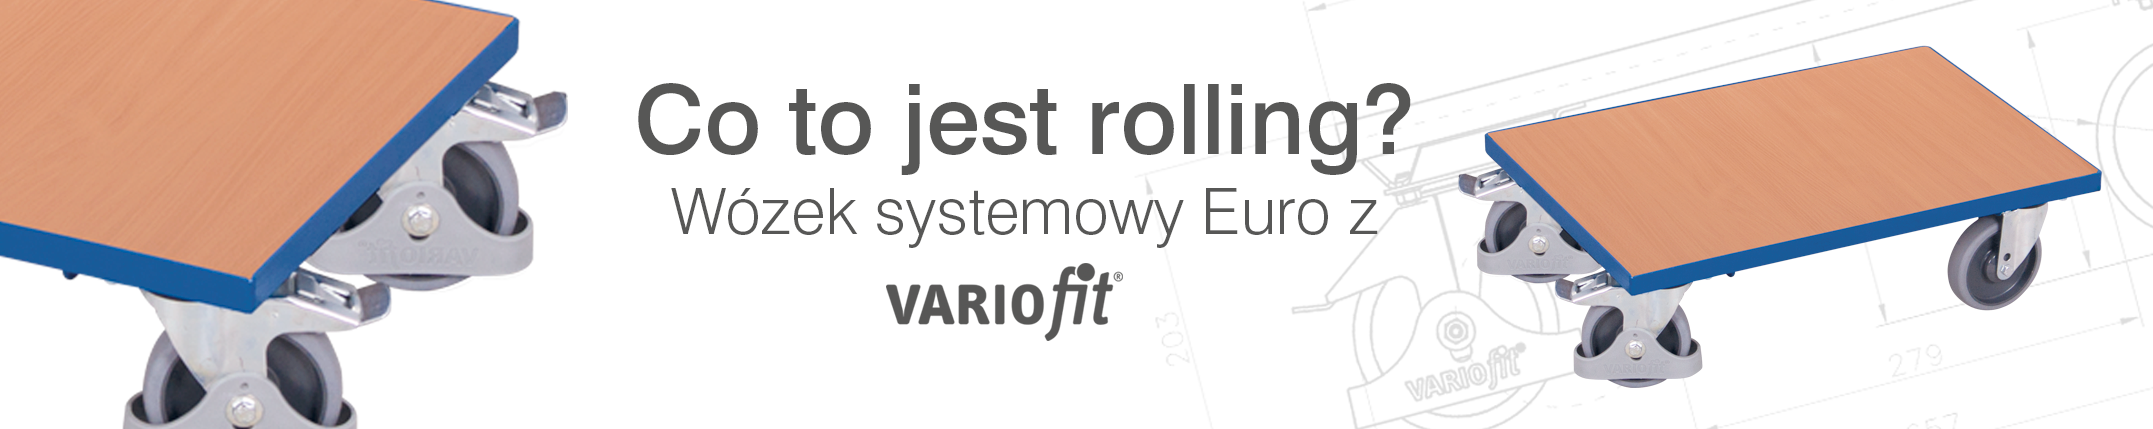 Euro-System-Roller-po